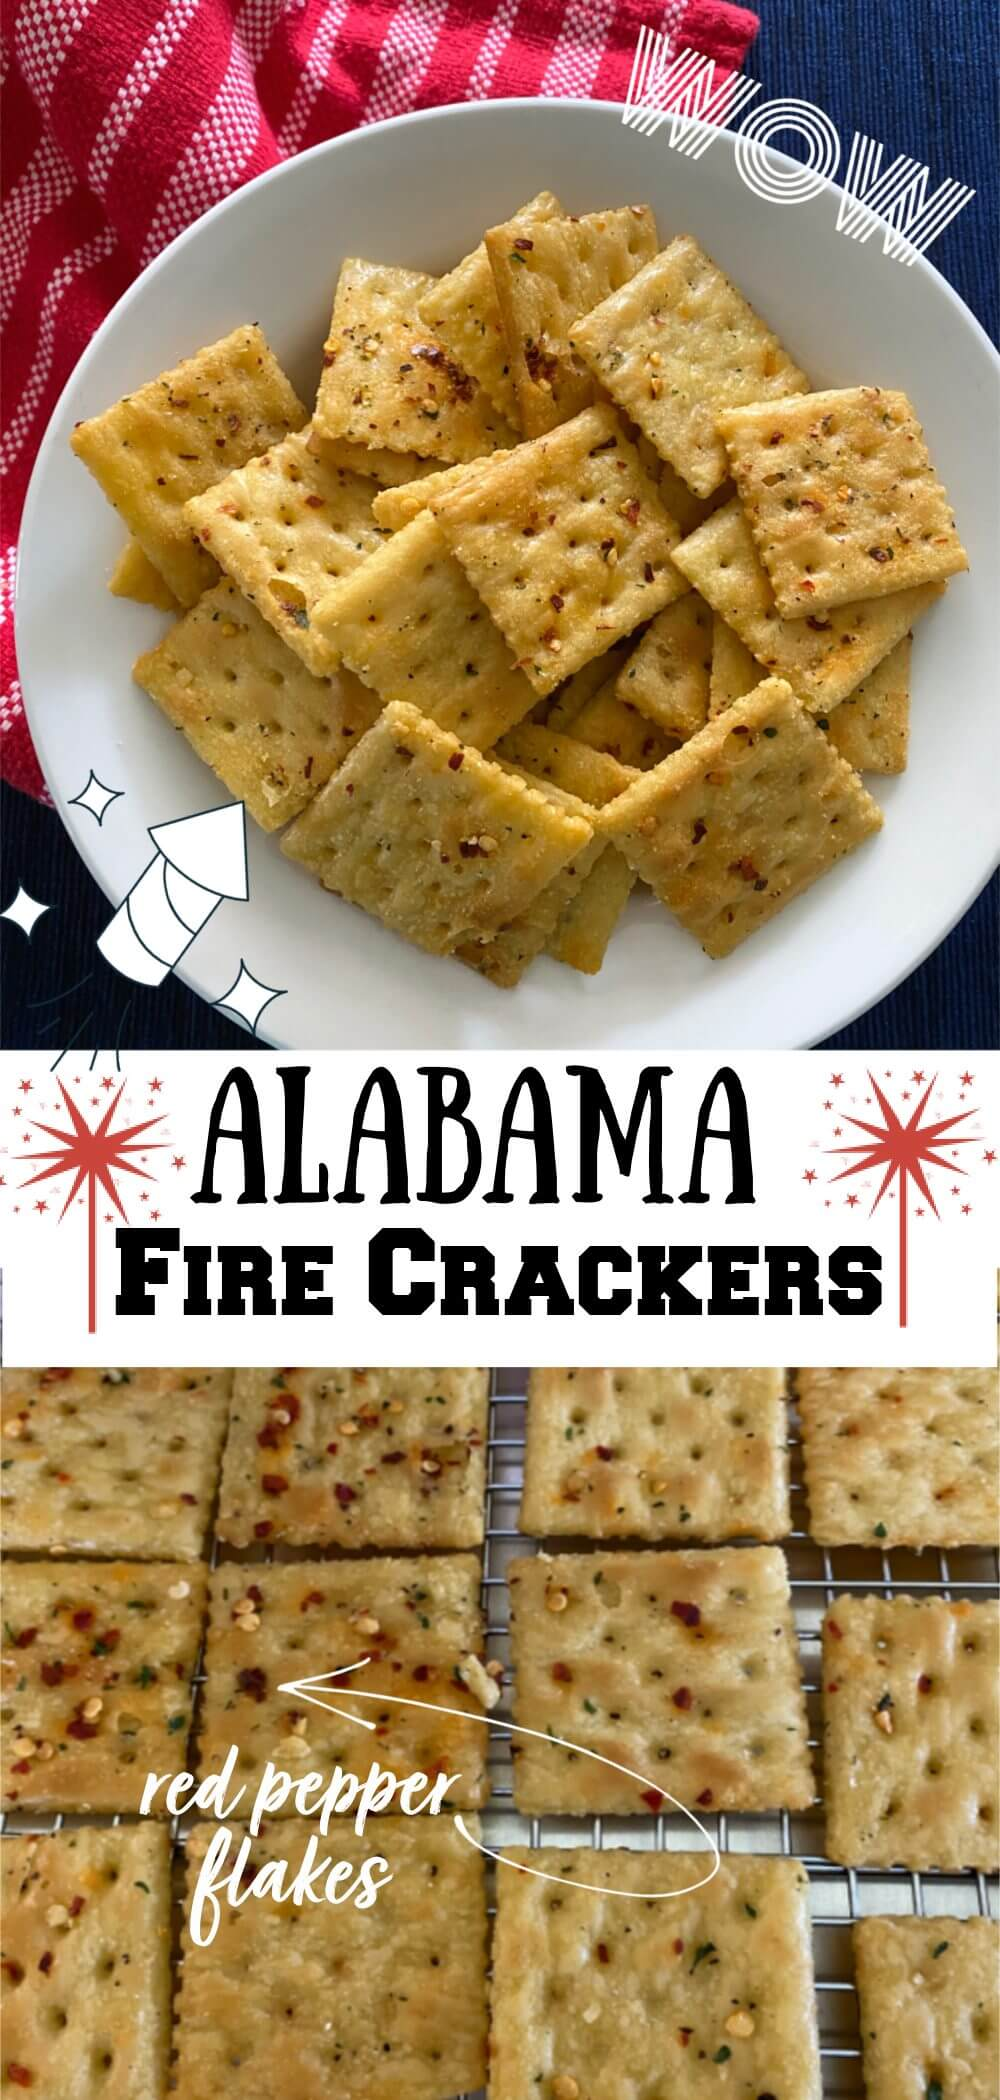 Ranch fire crackers are not your average snack. The seasoning and spices transforms the saltines into something delicious and addictive. Serve these with soups or stew or by themselves at a party, game day celebration, or just for you and your family for snacking when you get the hangries. #ranchcrackers, #firecrackers, #partycrackers, #Alabamafirecrackers.